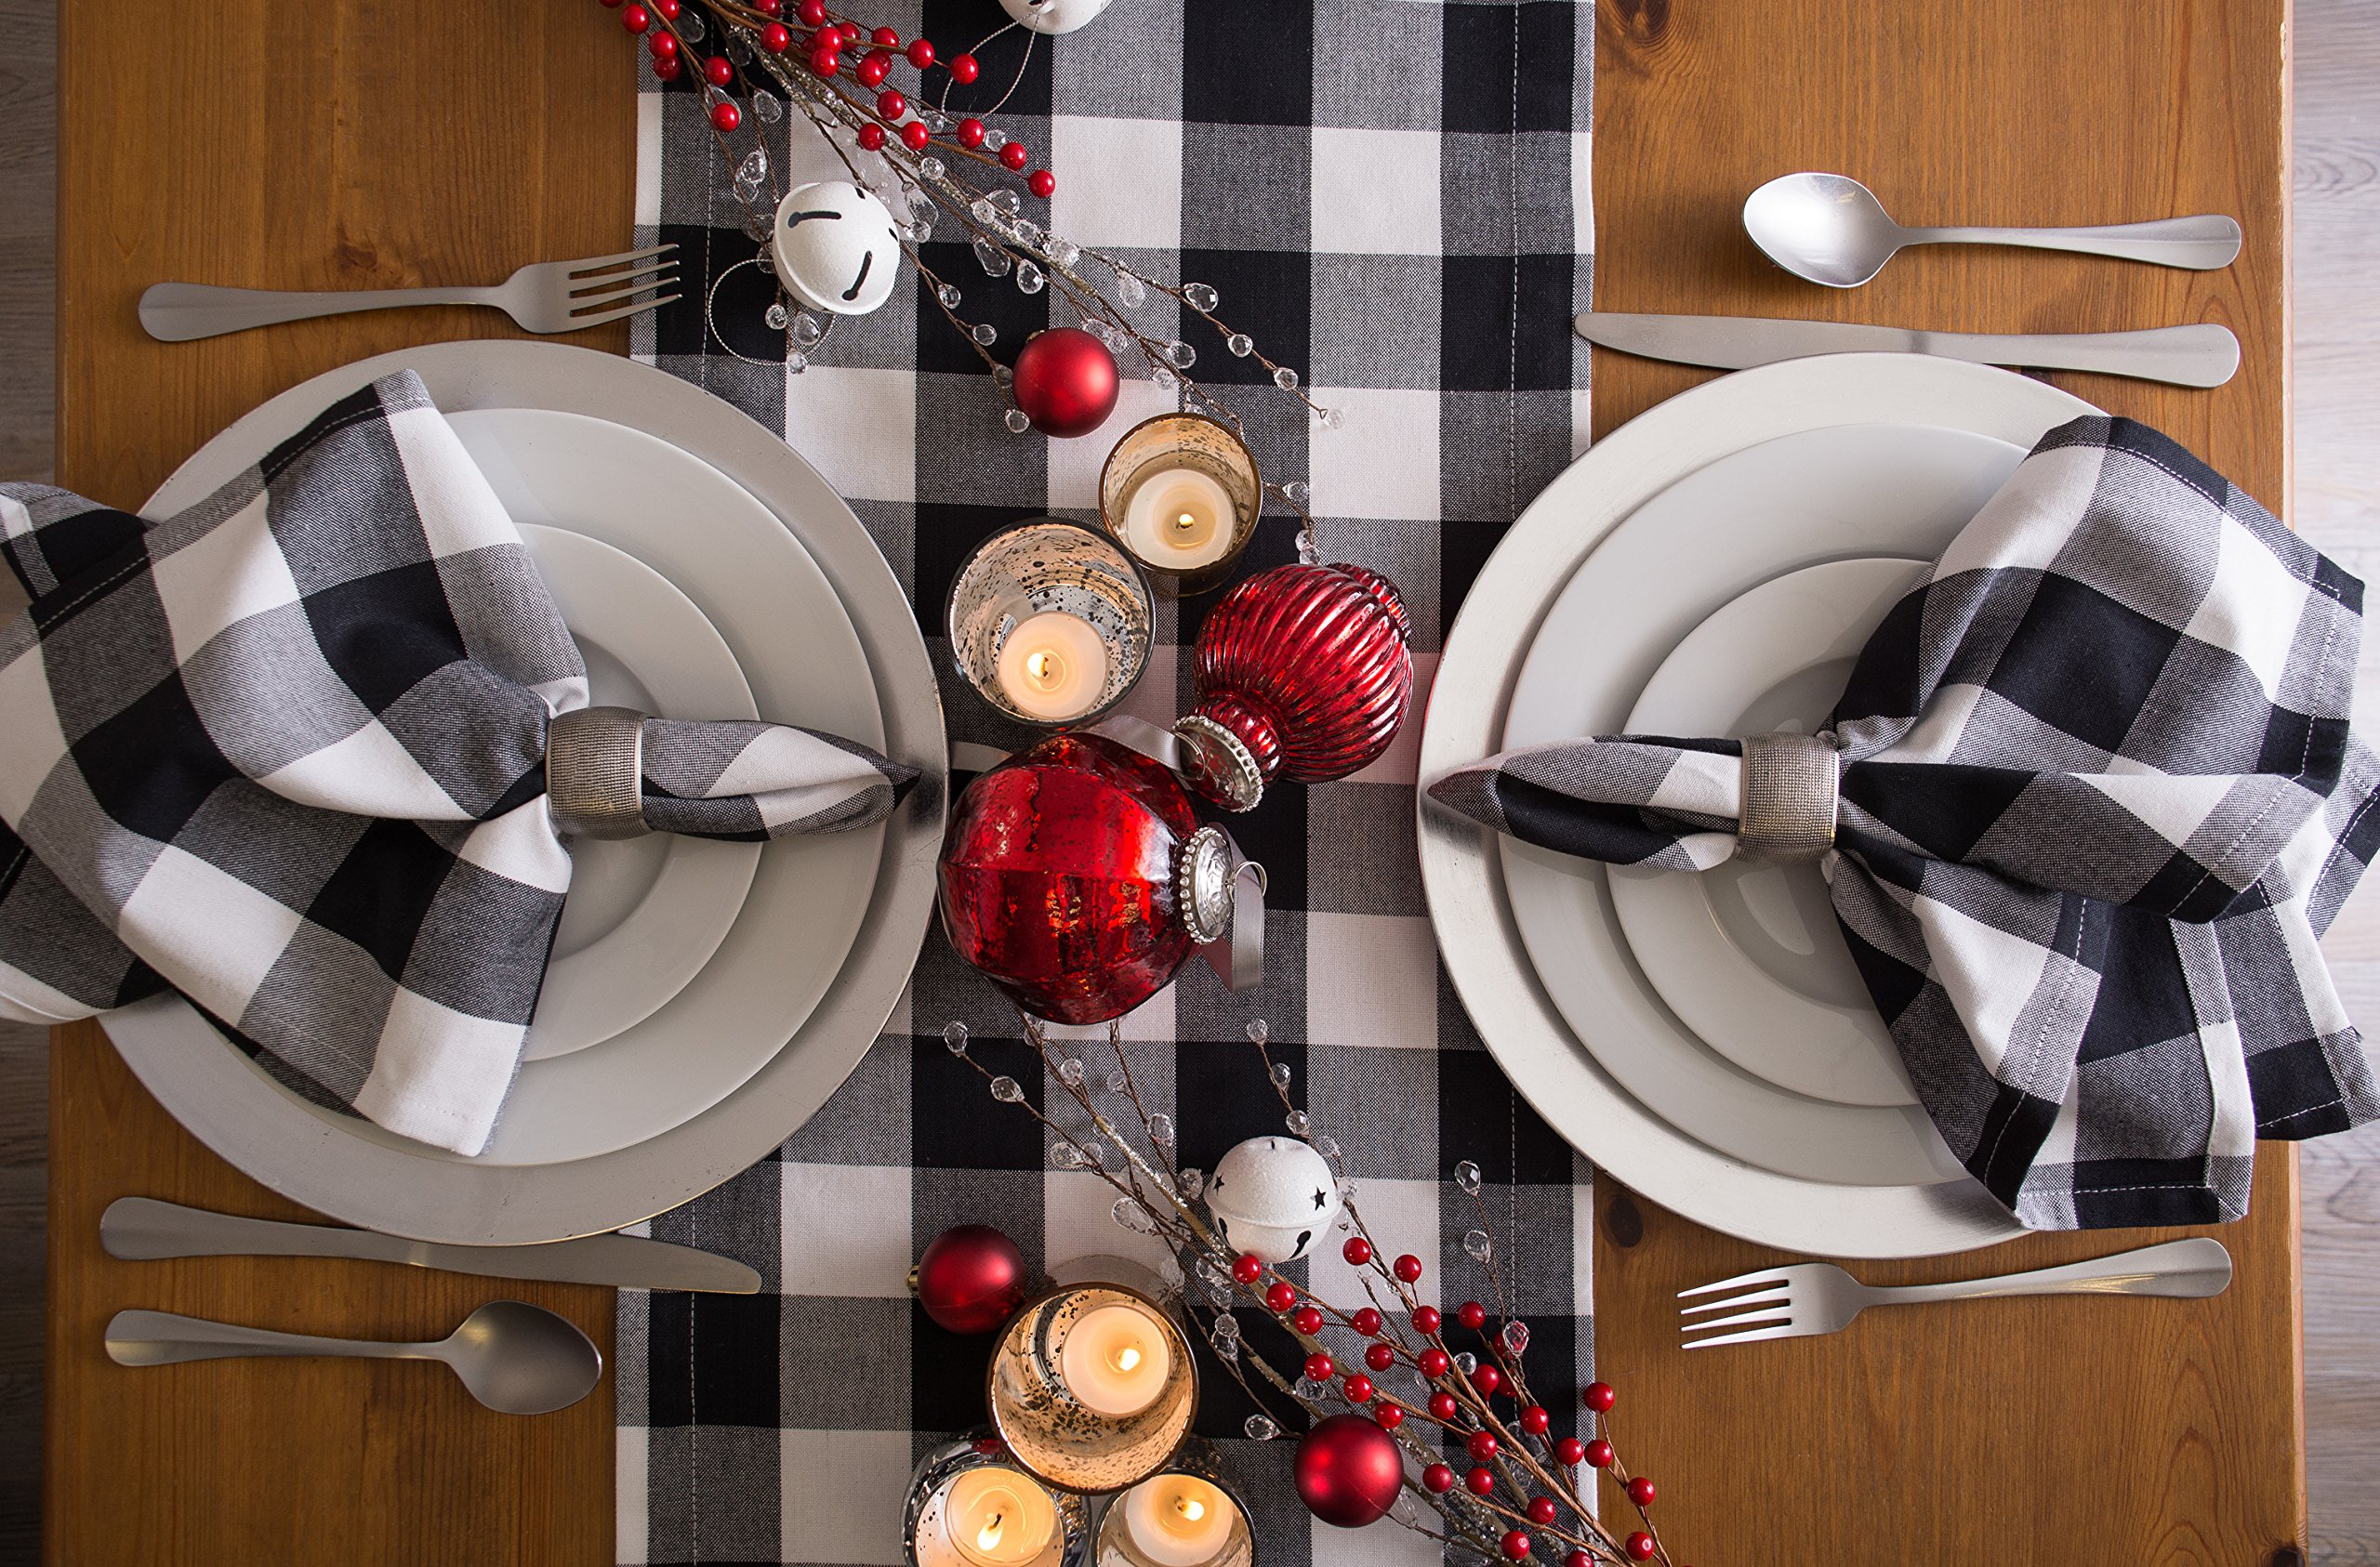 DII Cotton Buffalo Check Table Runner for Family Dinners or Gatherings, Indoor or Outdoor Parties, & Everyday Use (14x108'',  Seats 8-10 People), Black & White by DII (Image #6)